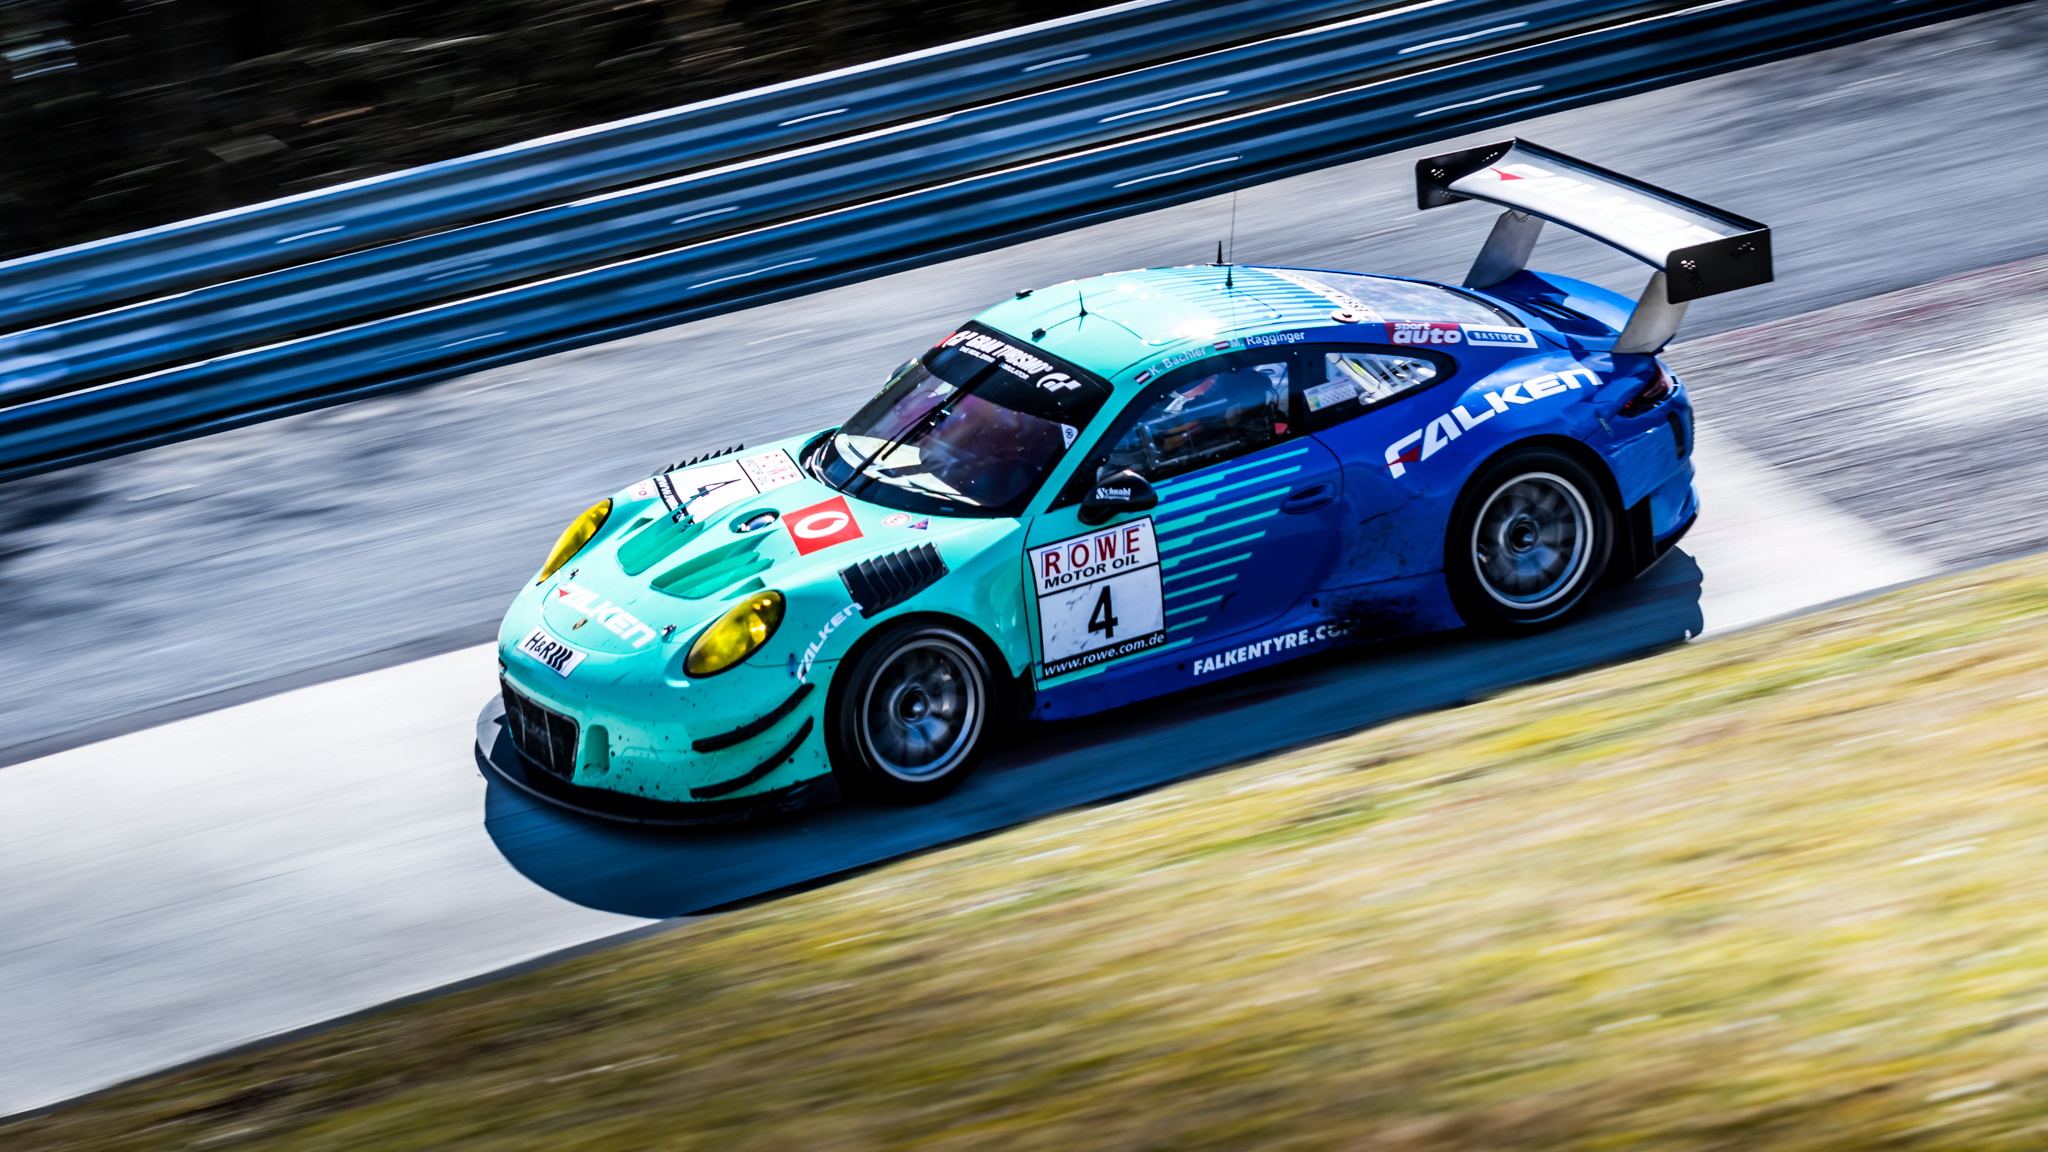 Klaus Bachelor and Martin Ragginger in their Falken Motorsport Porsche 911 GT3 R managed to finish 3rd and took their second top three result on a row.